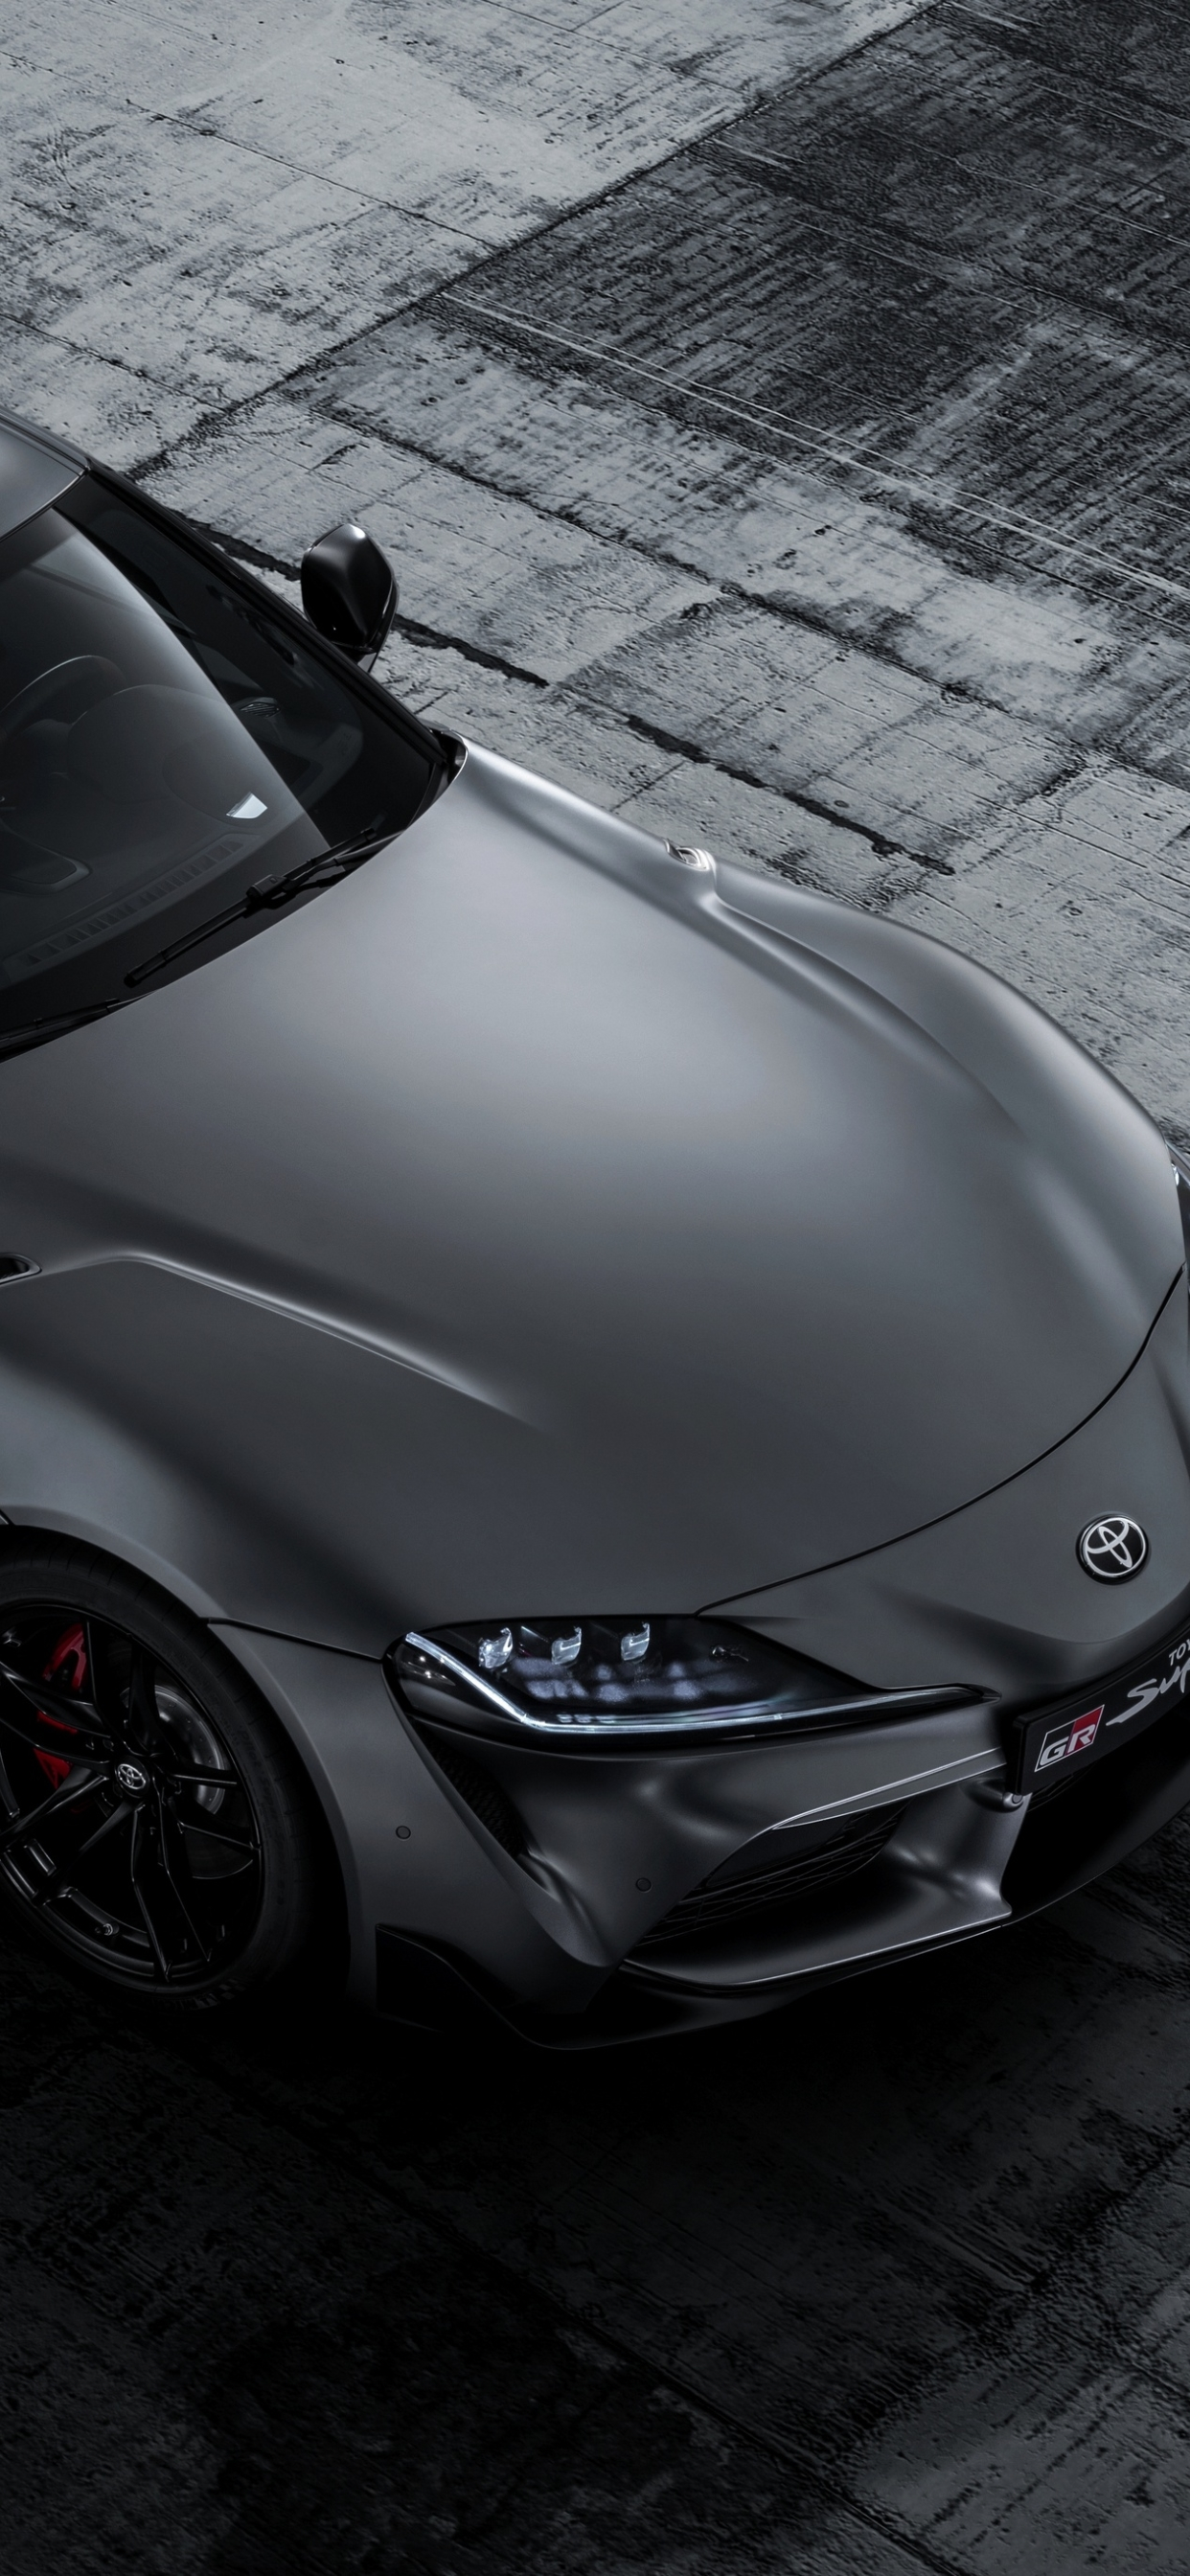 1242x2688 Toyota Supra Iphone Xs Max Wallpaper Hd Cars 4k Wallpapers Images Photos And Background